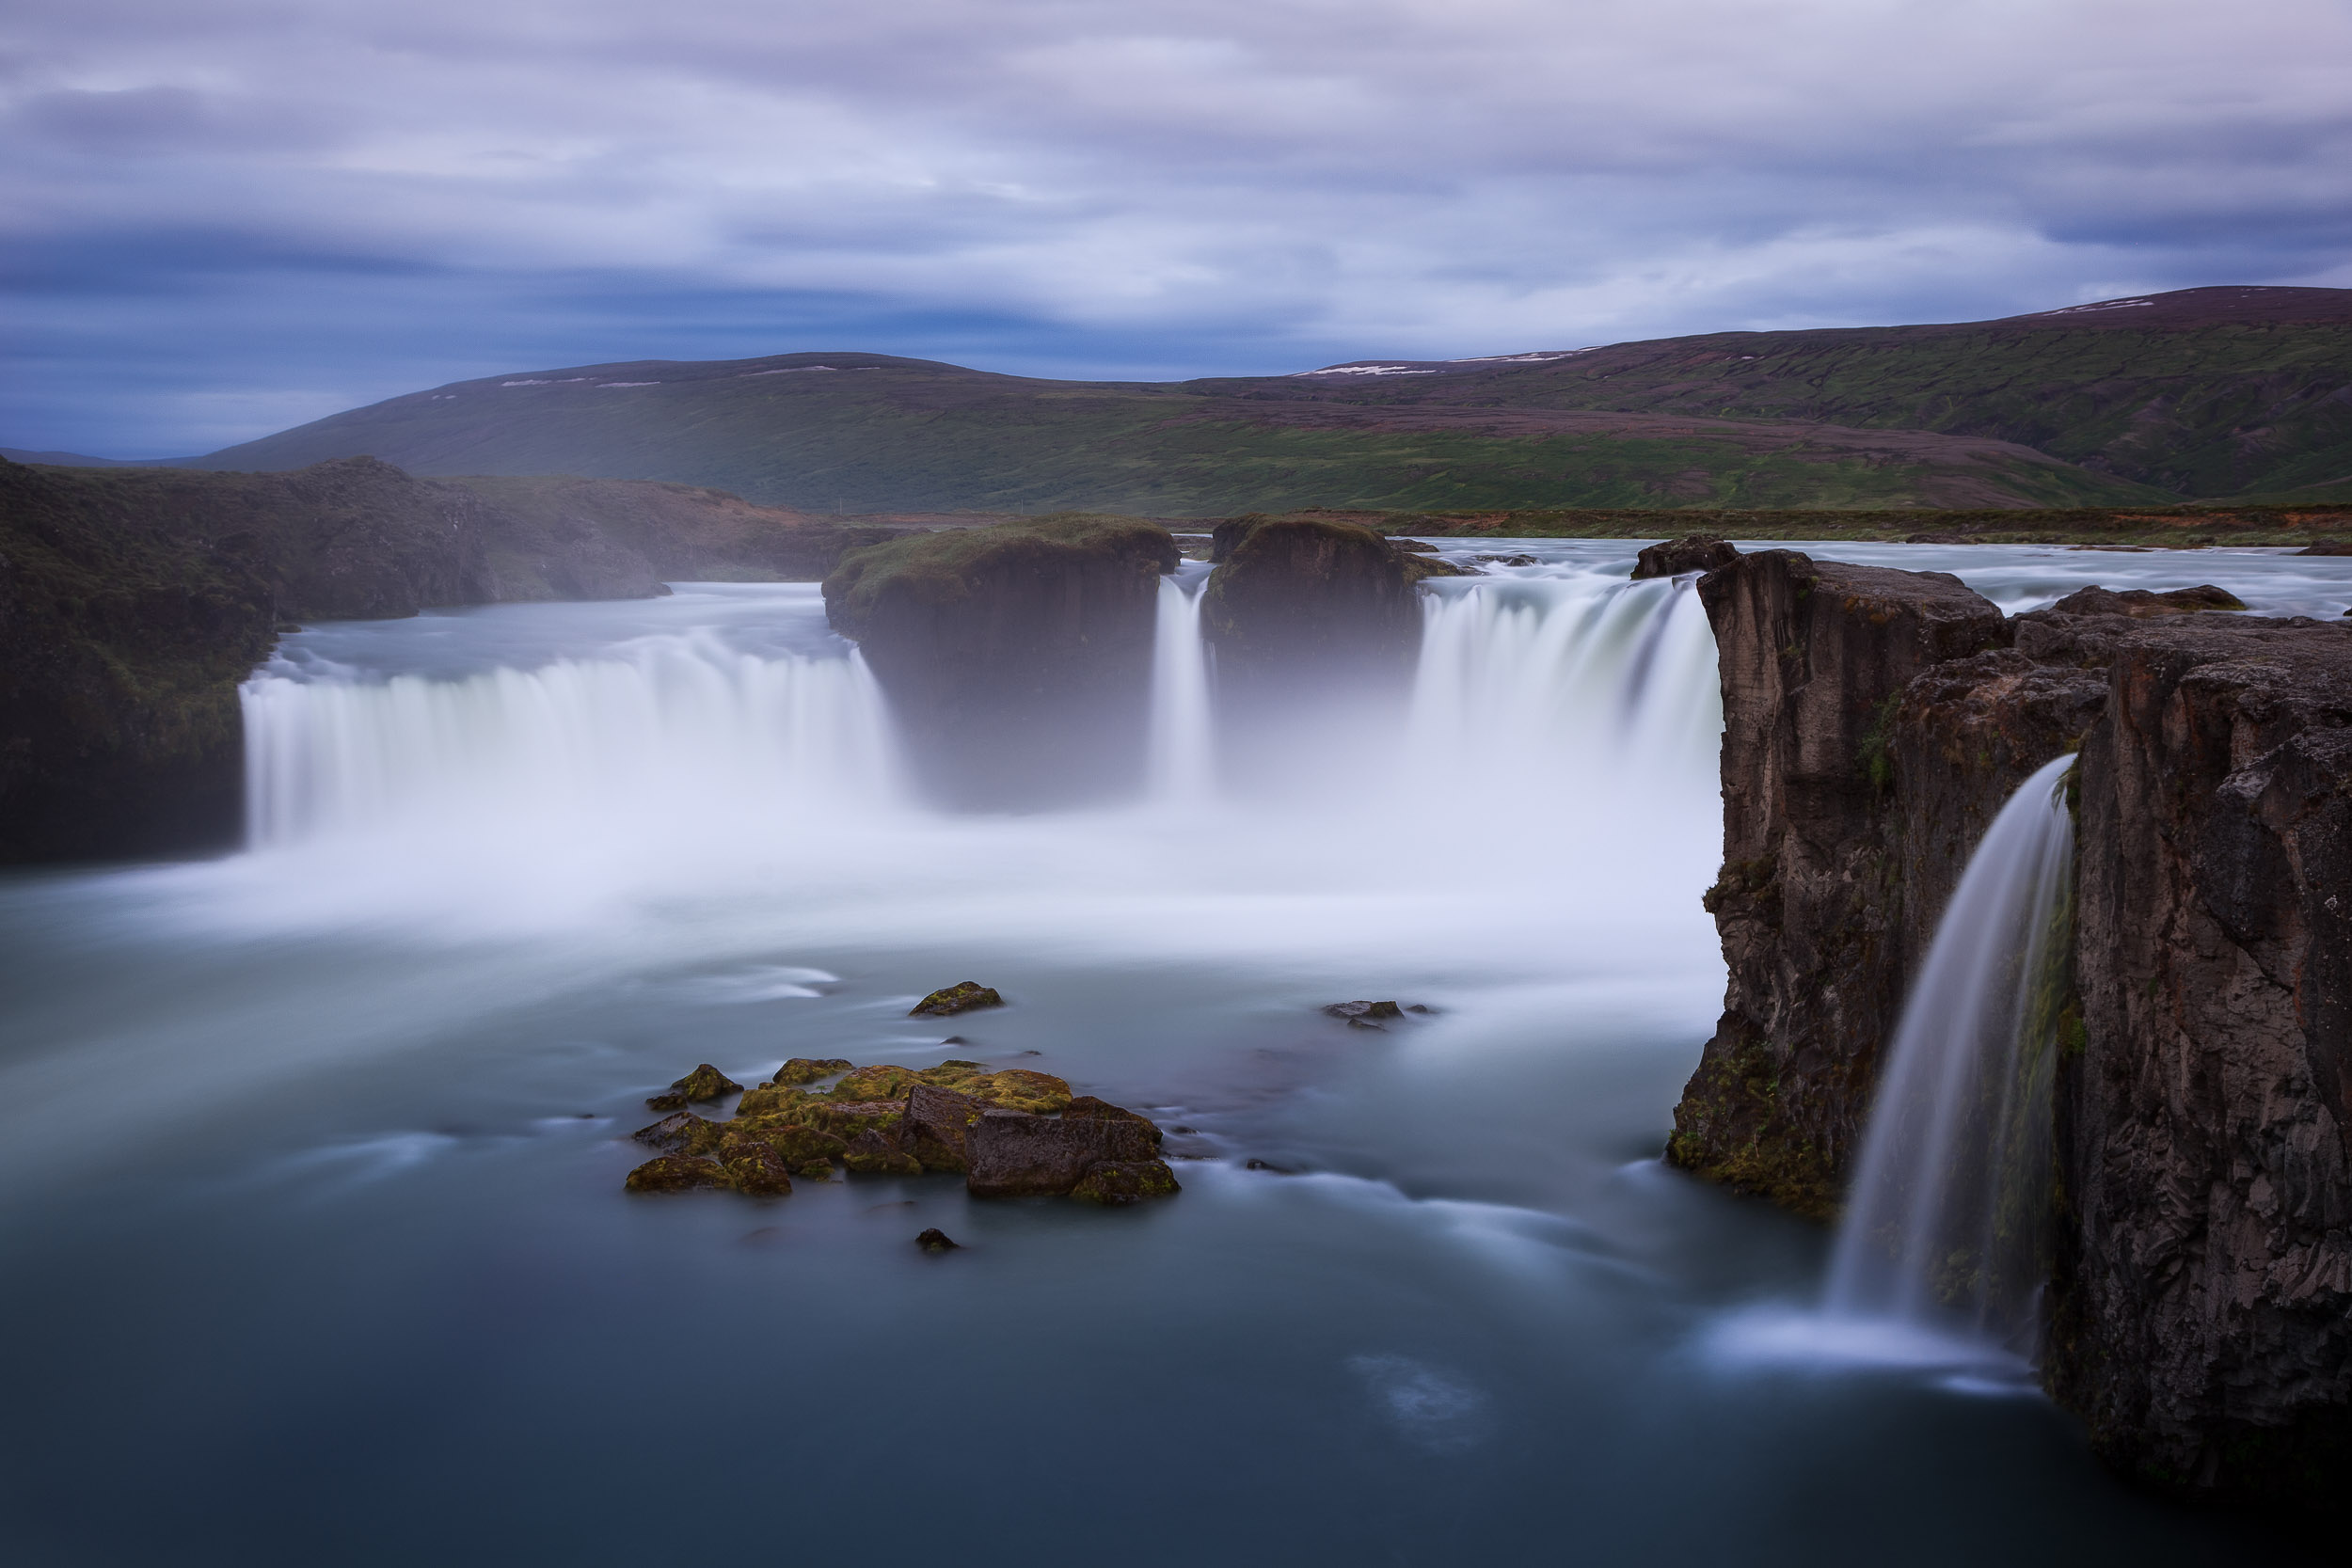 Godafoss    waterfall, under bluish grey light, has a strangely    melancholy beauty    very typical to landscapes throughout much of    Iceland   .